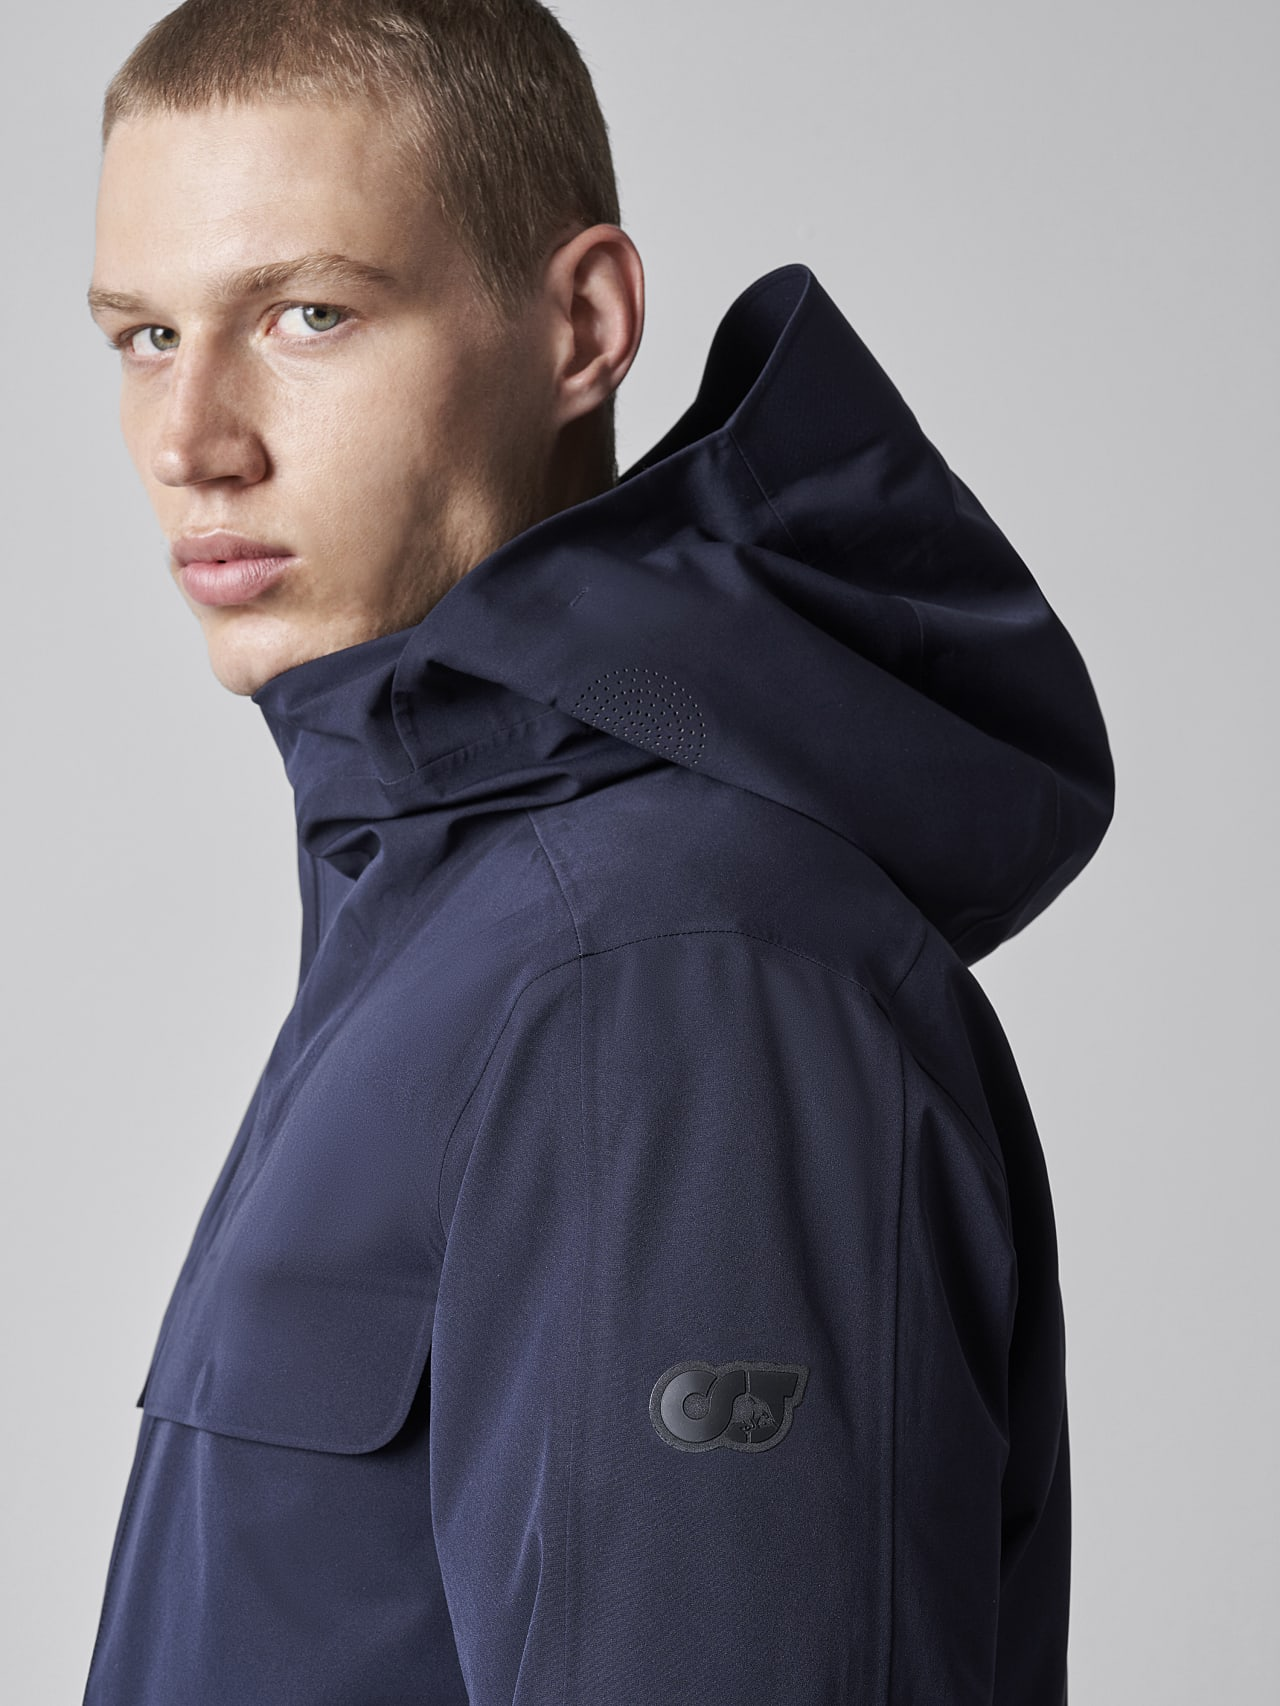 KOOV V6.Y5.02 Packable and Waterproof Winter Parka navy scene7.view.8.name Alpha Tauri